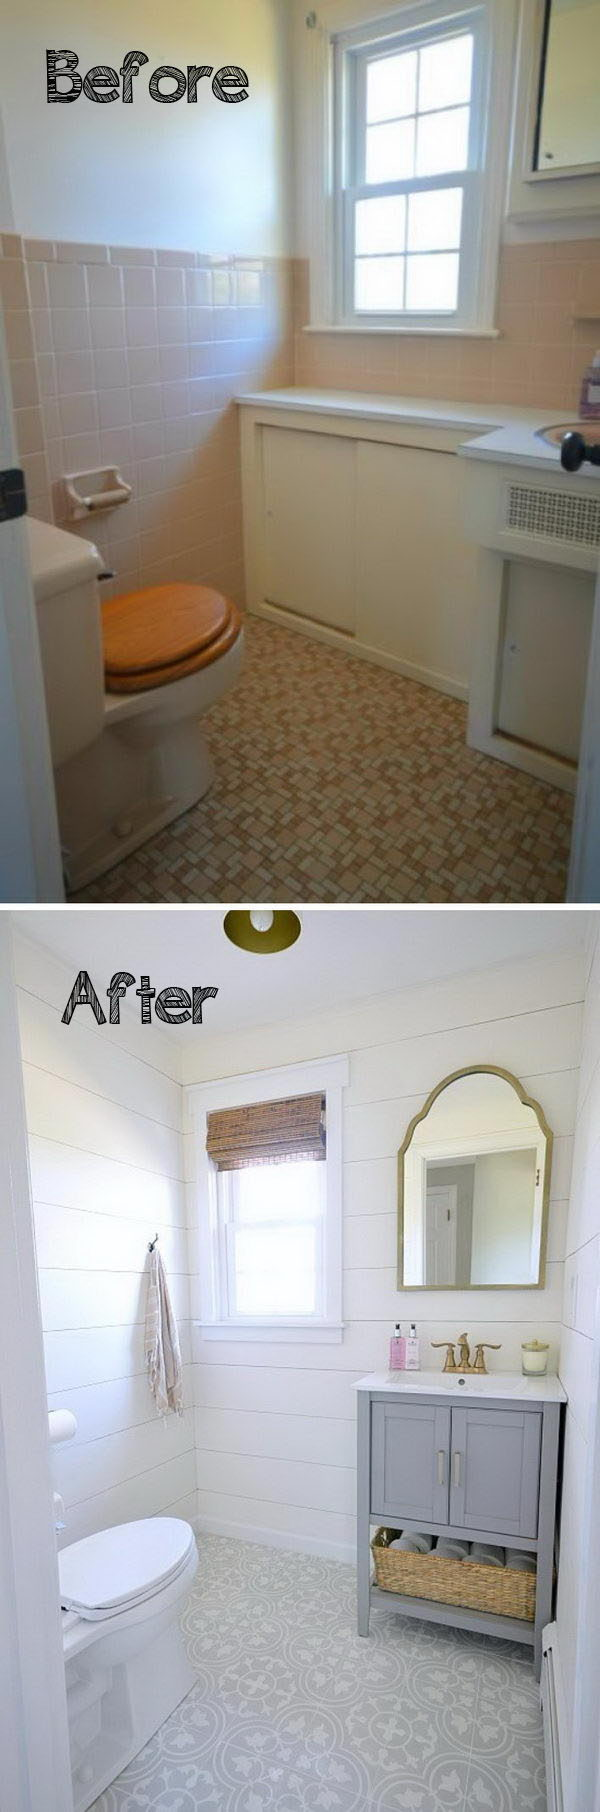 Allow The Bold Patterned Floor and The Gray Vanity to Stand Out with White Shiplap Walls Which Look Clean.